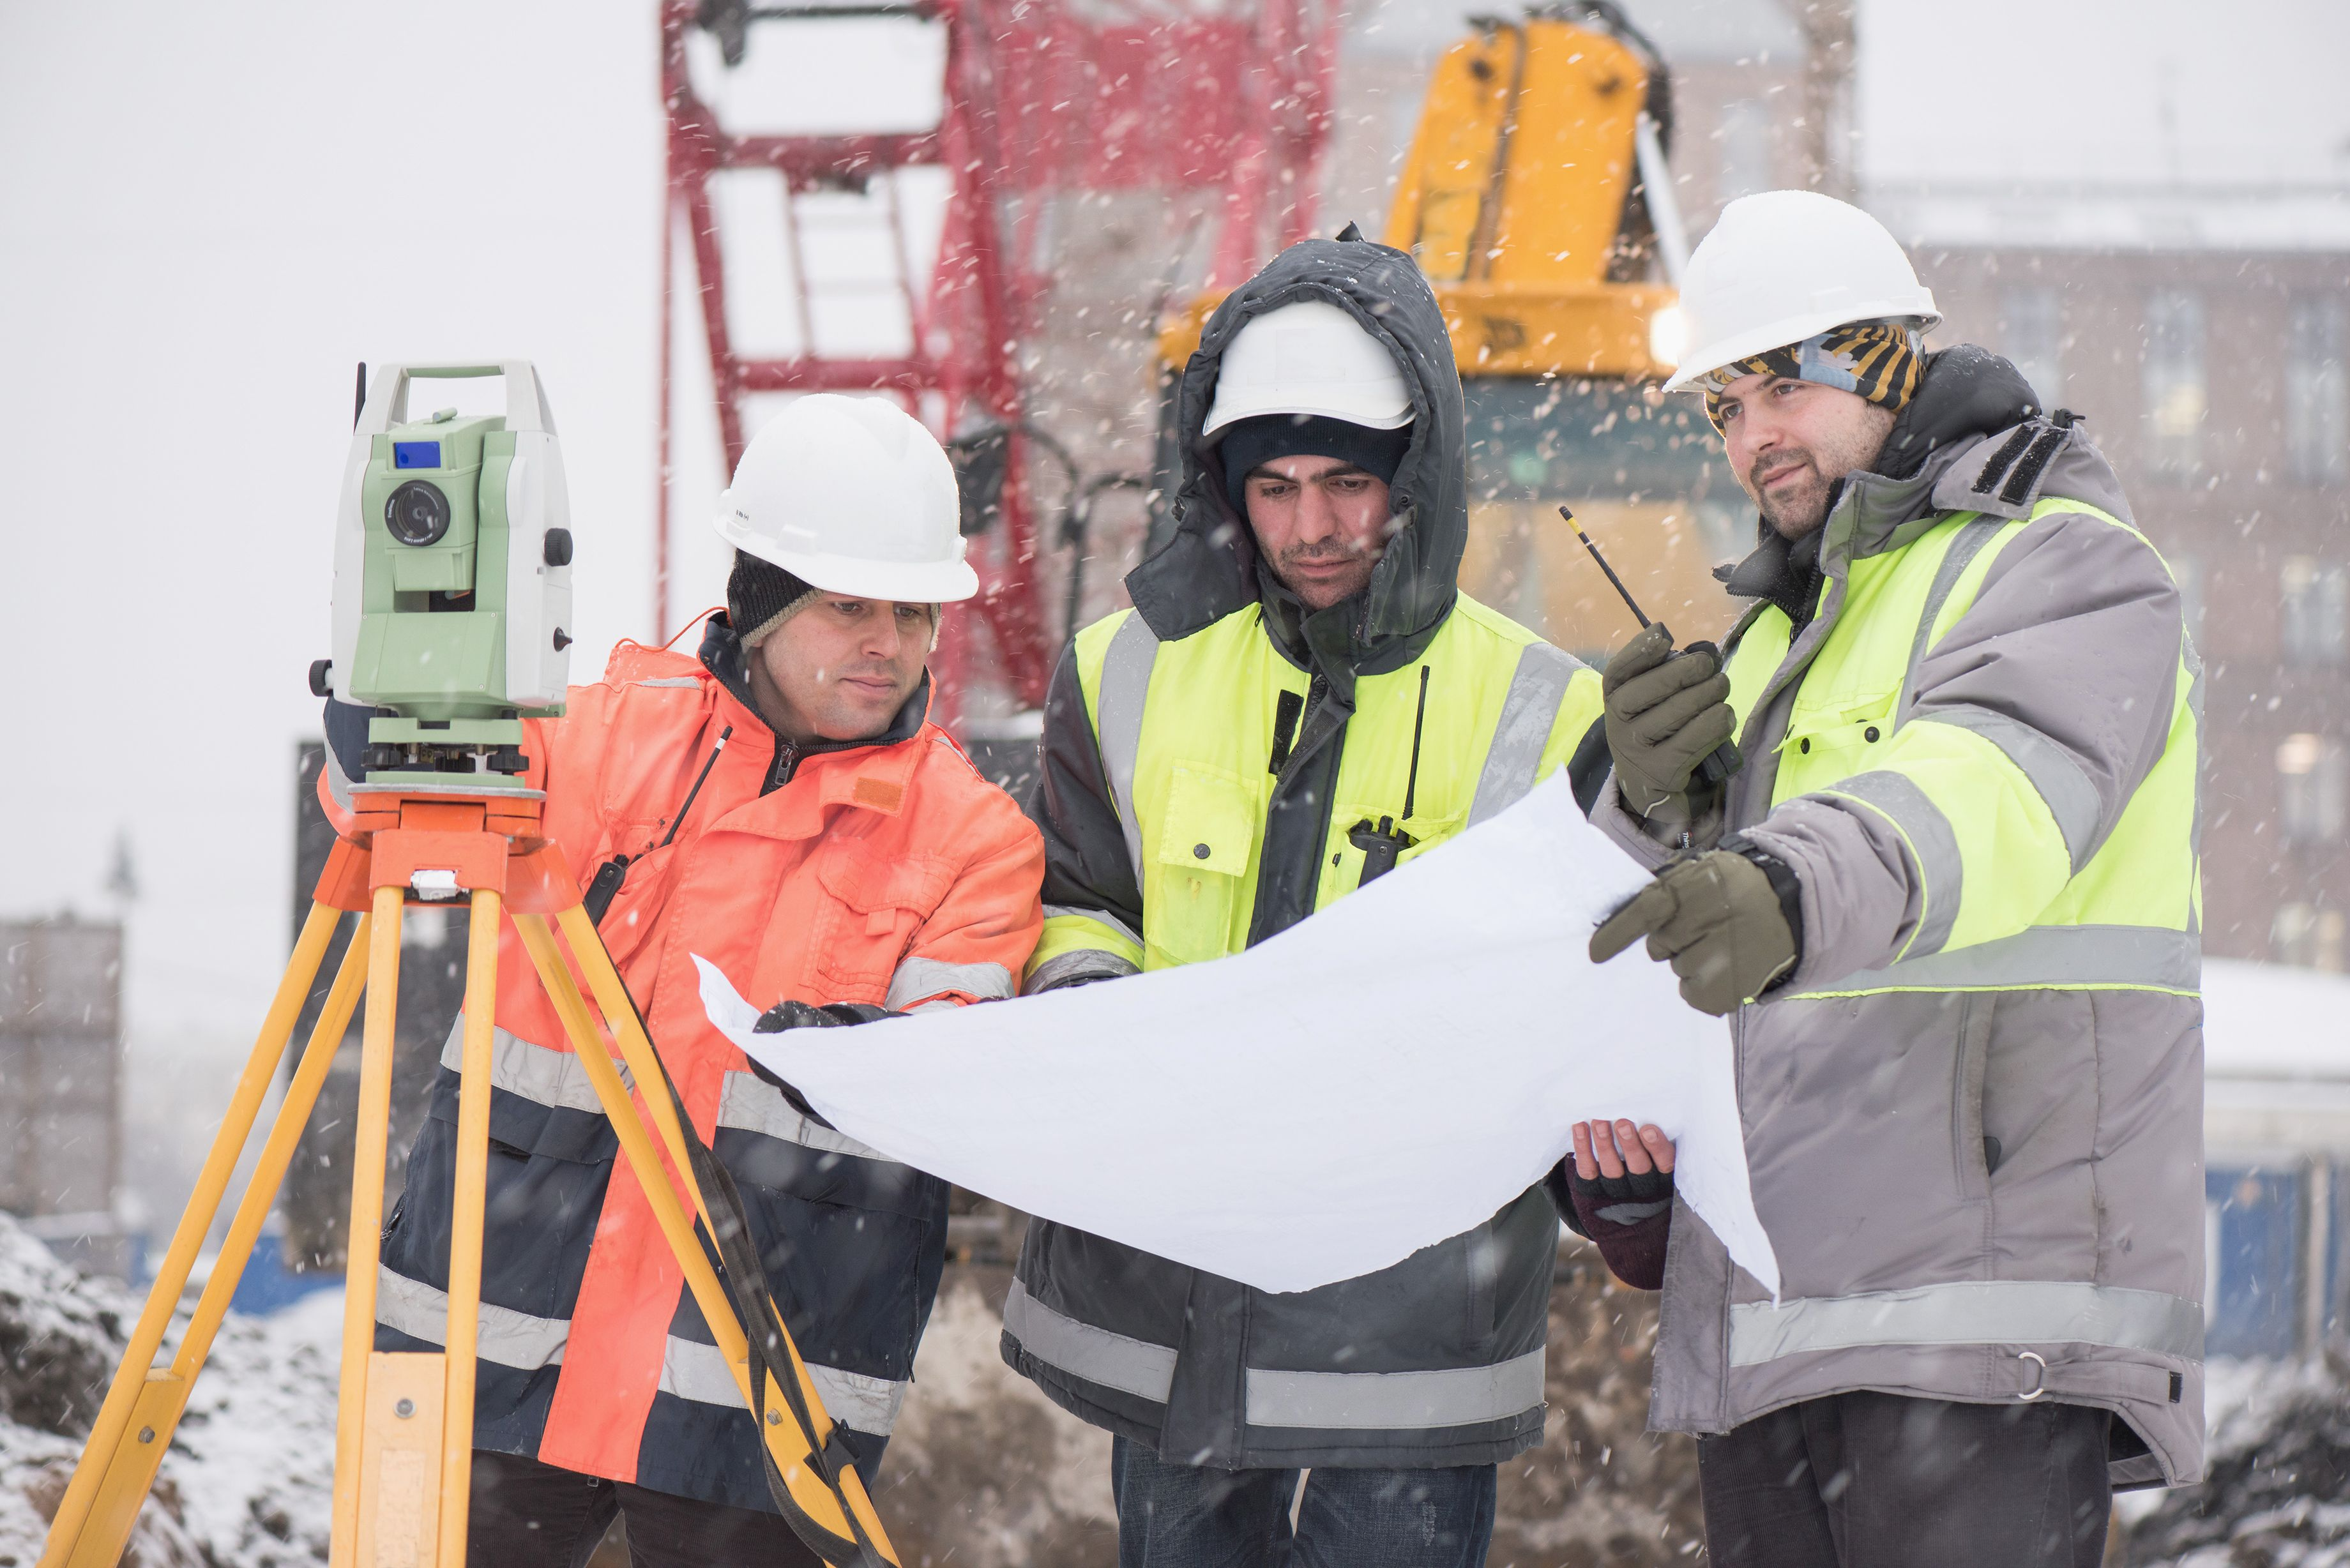 winter safety construction tips storms plan equip train osha